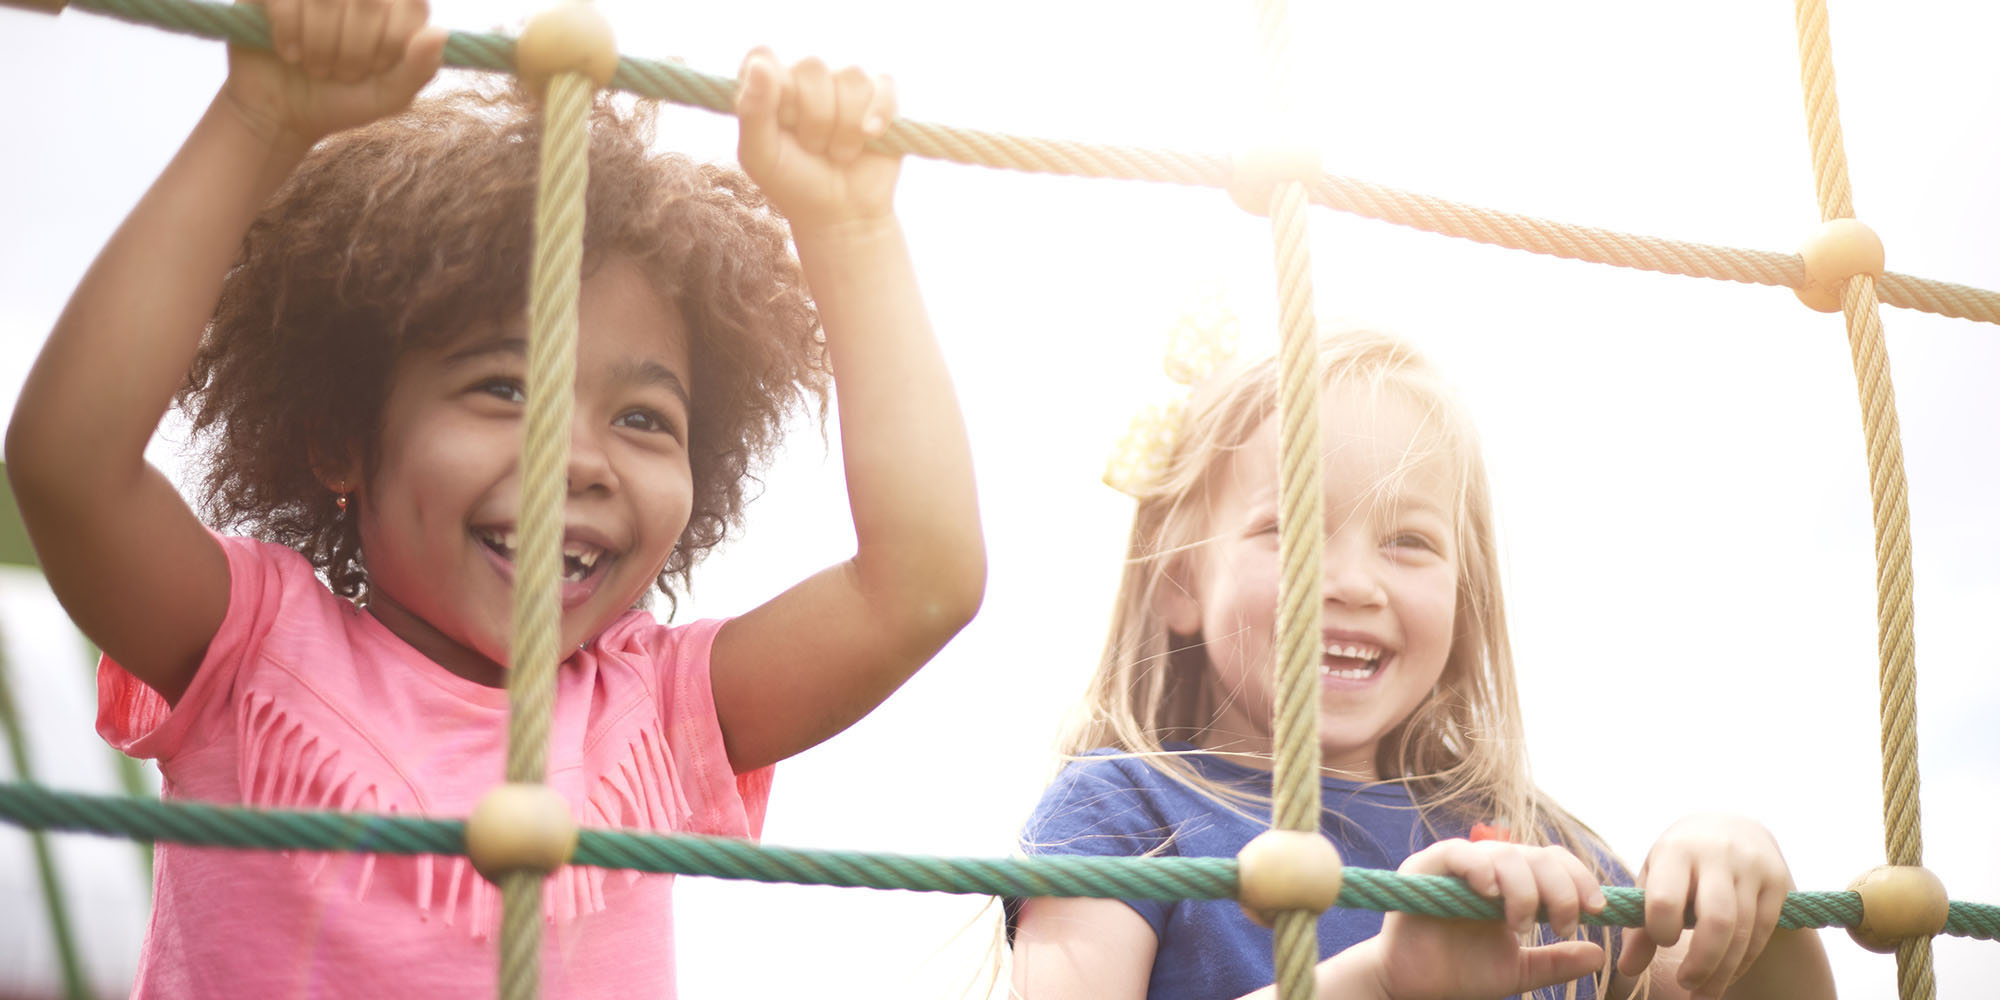 Two little girls playing together on a piece of playground equipment in the sun.